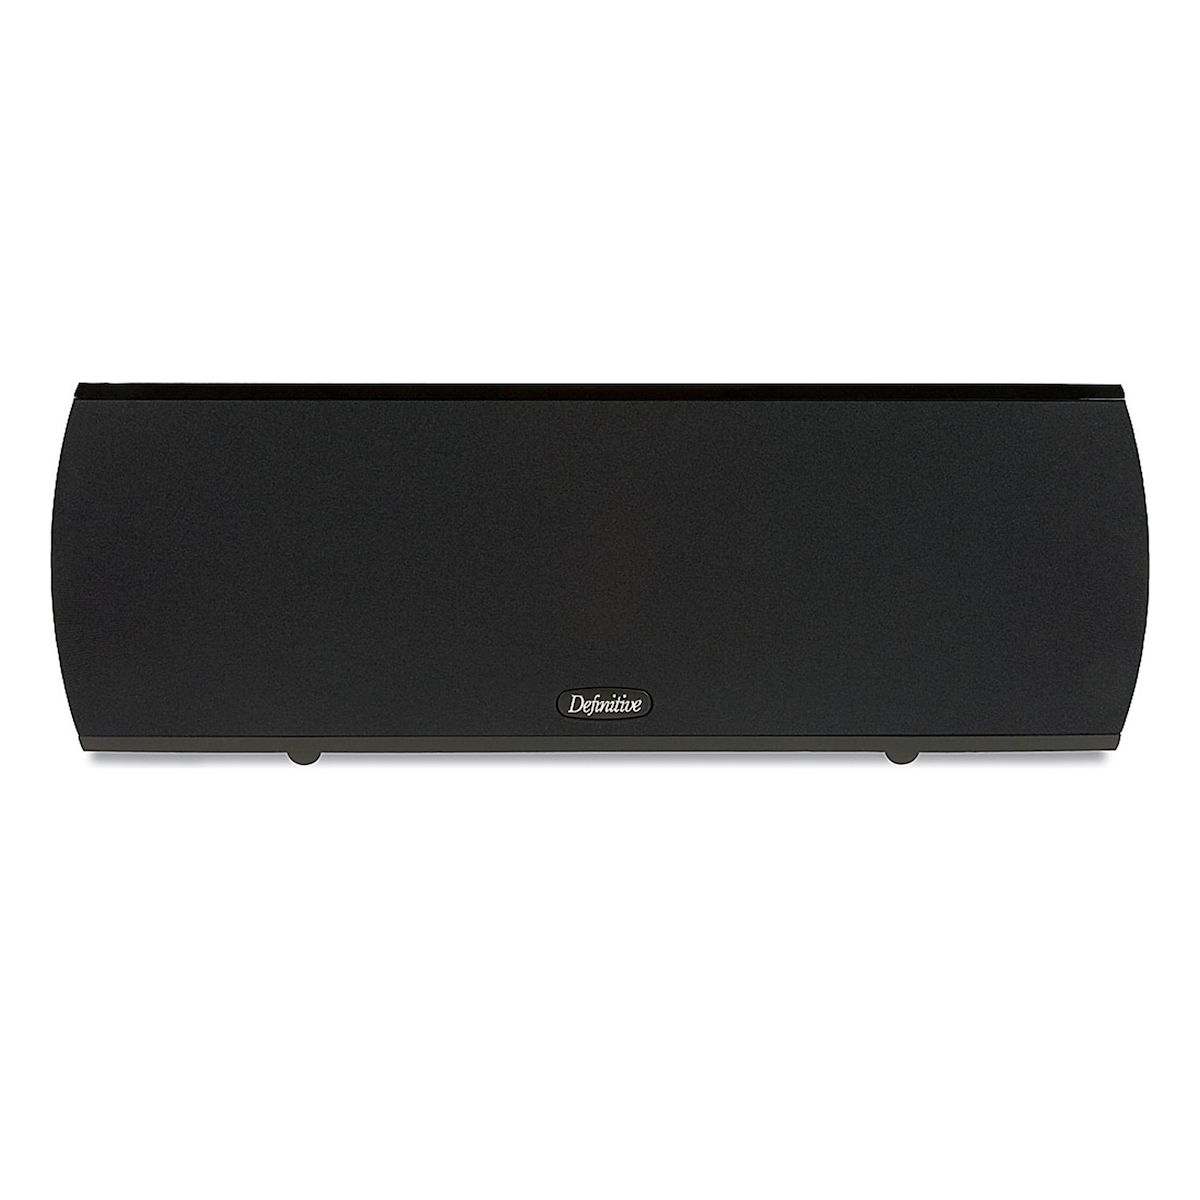 Definitive Technology ProCenter 1000 - Centre Speaker - AVStore